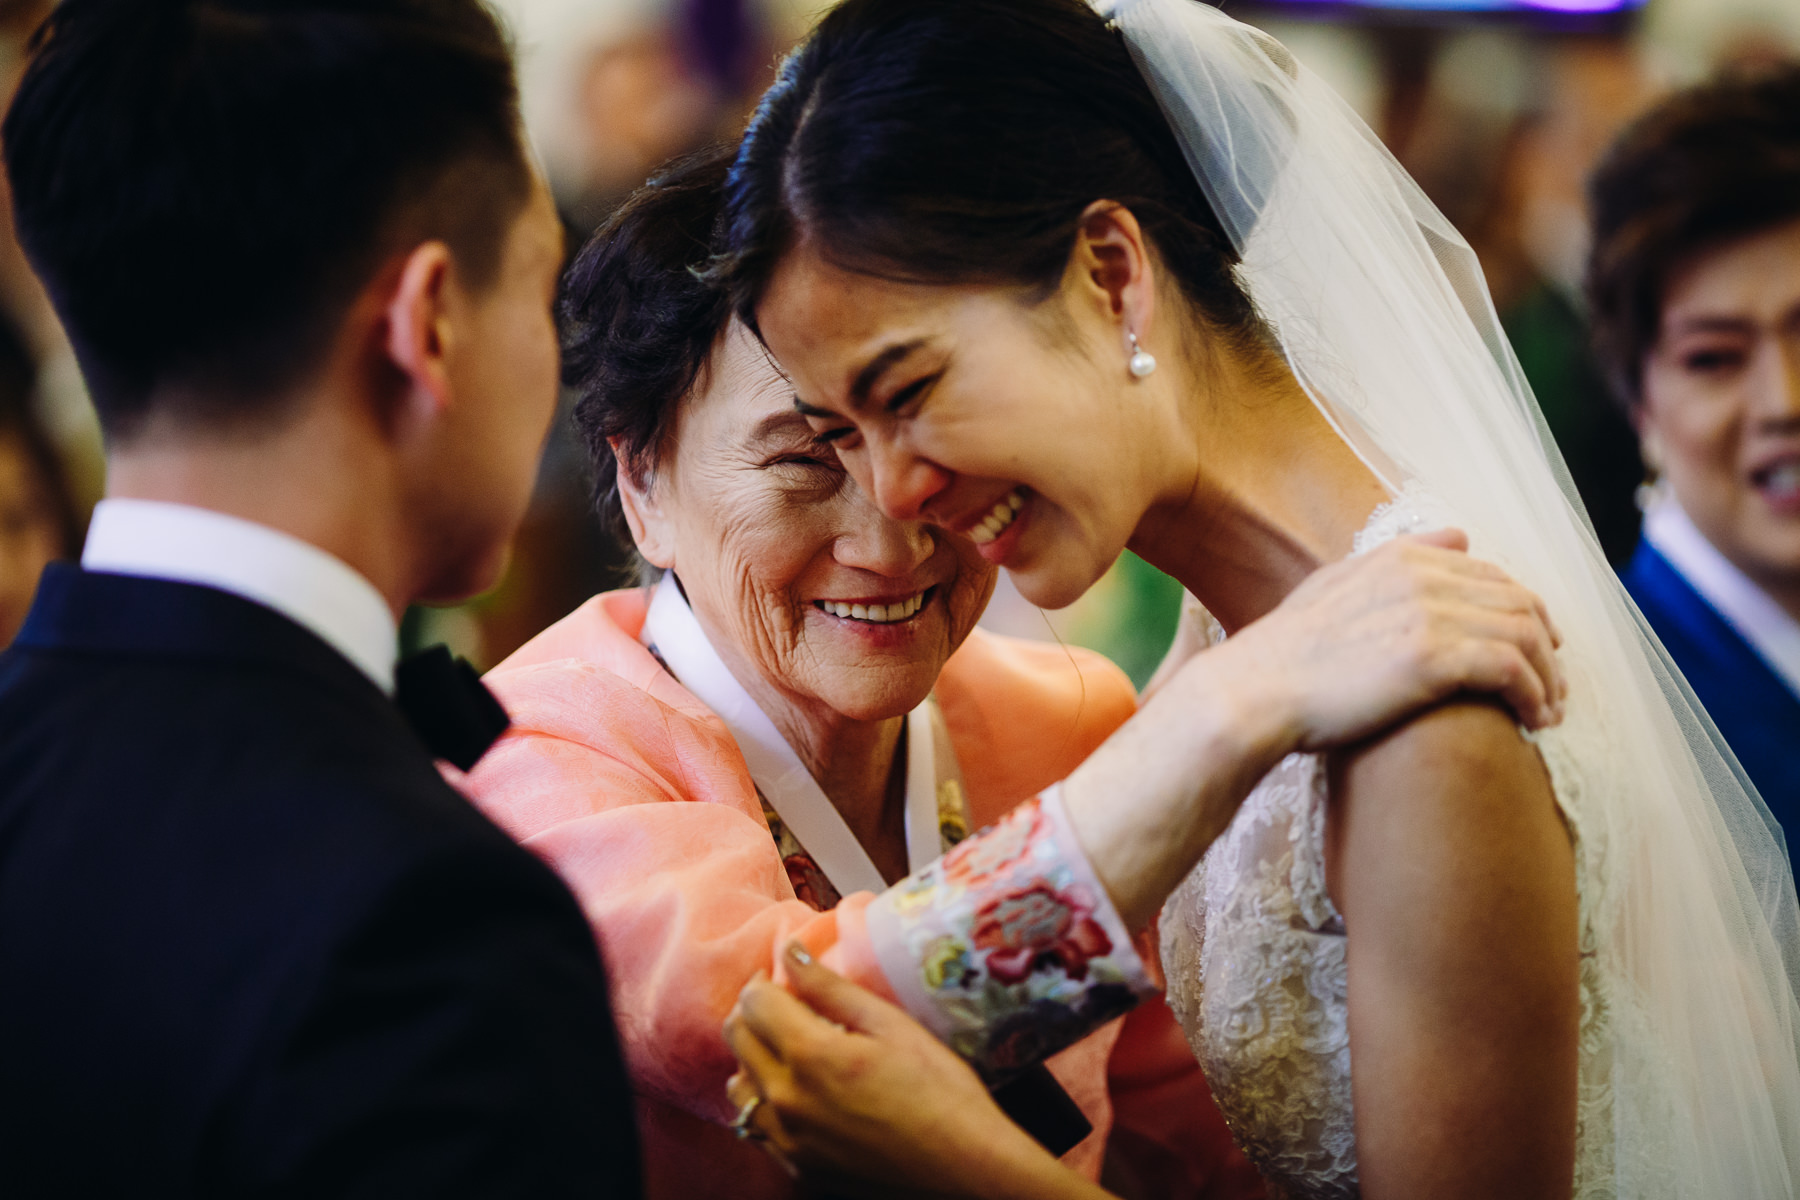 grandma and bride wedding ceremony moment